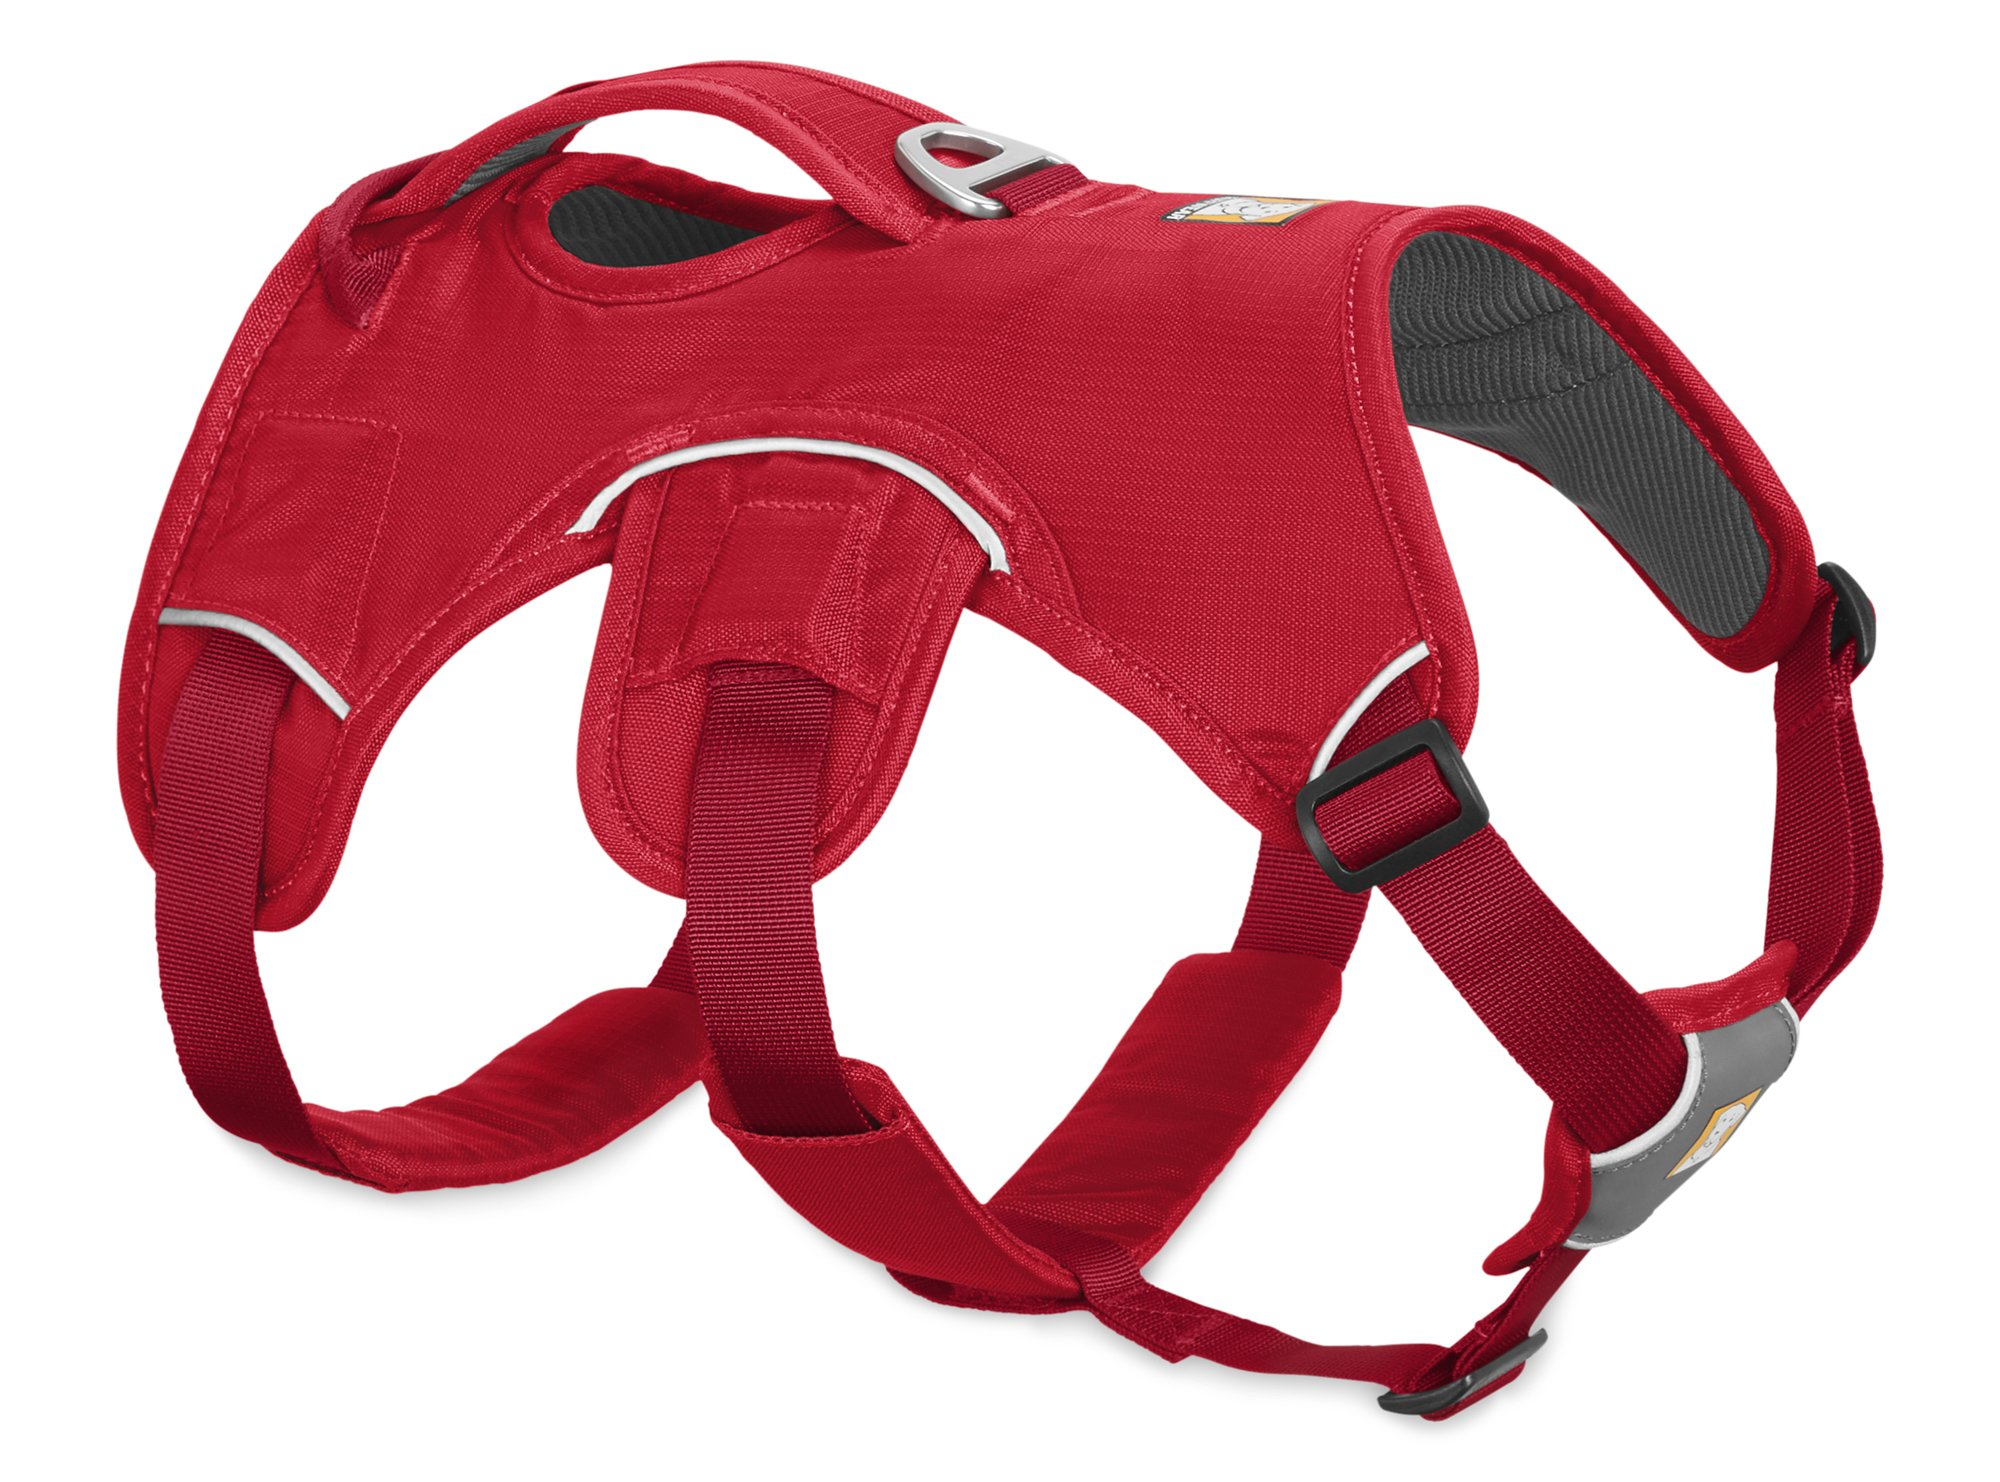 RUFFWEAR - Web Master Dog Harness with Lift Handle, Red Currant, Medium